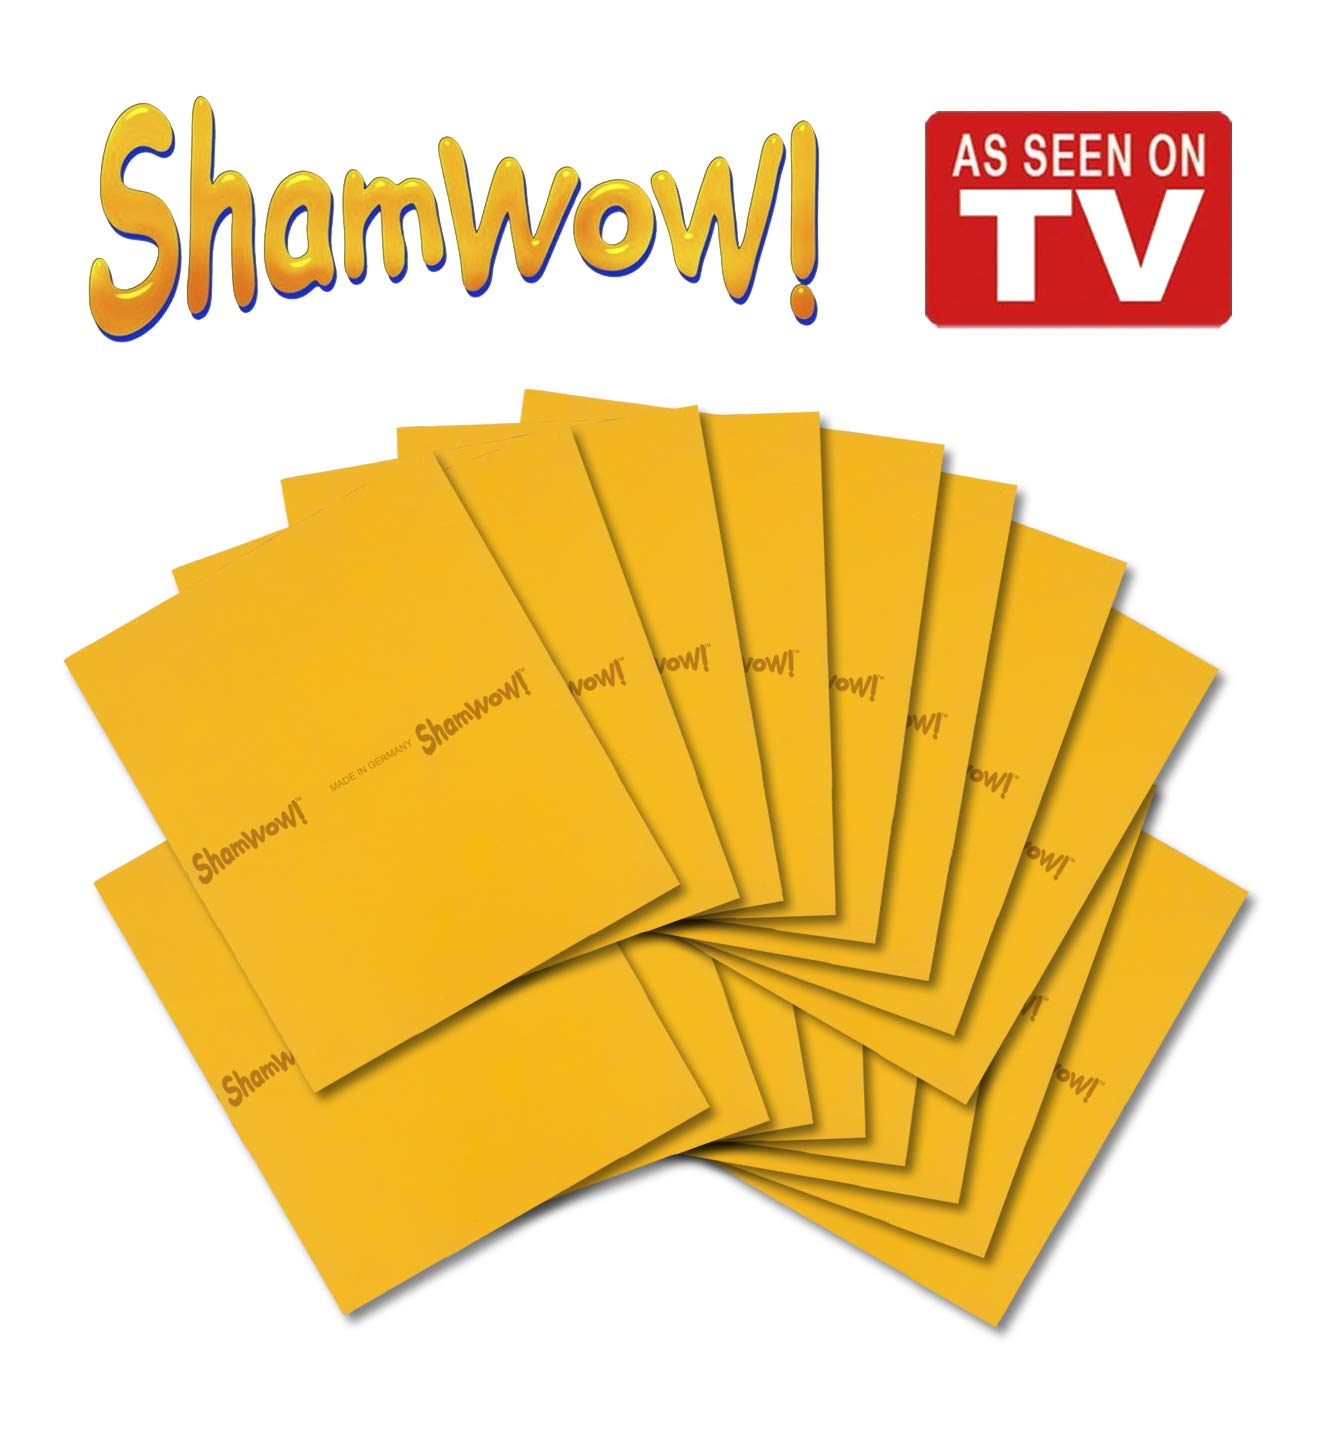 The Original Shamwow - Super Absorbent Multi-Purpose Cleaning Shammy (Chamois) Towel Cloth, Machine Washable, Will Not Scratch, Orange (16 Pack)